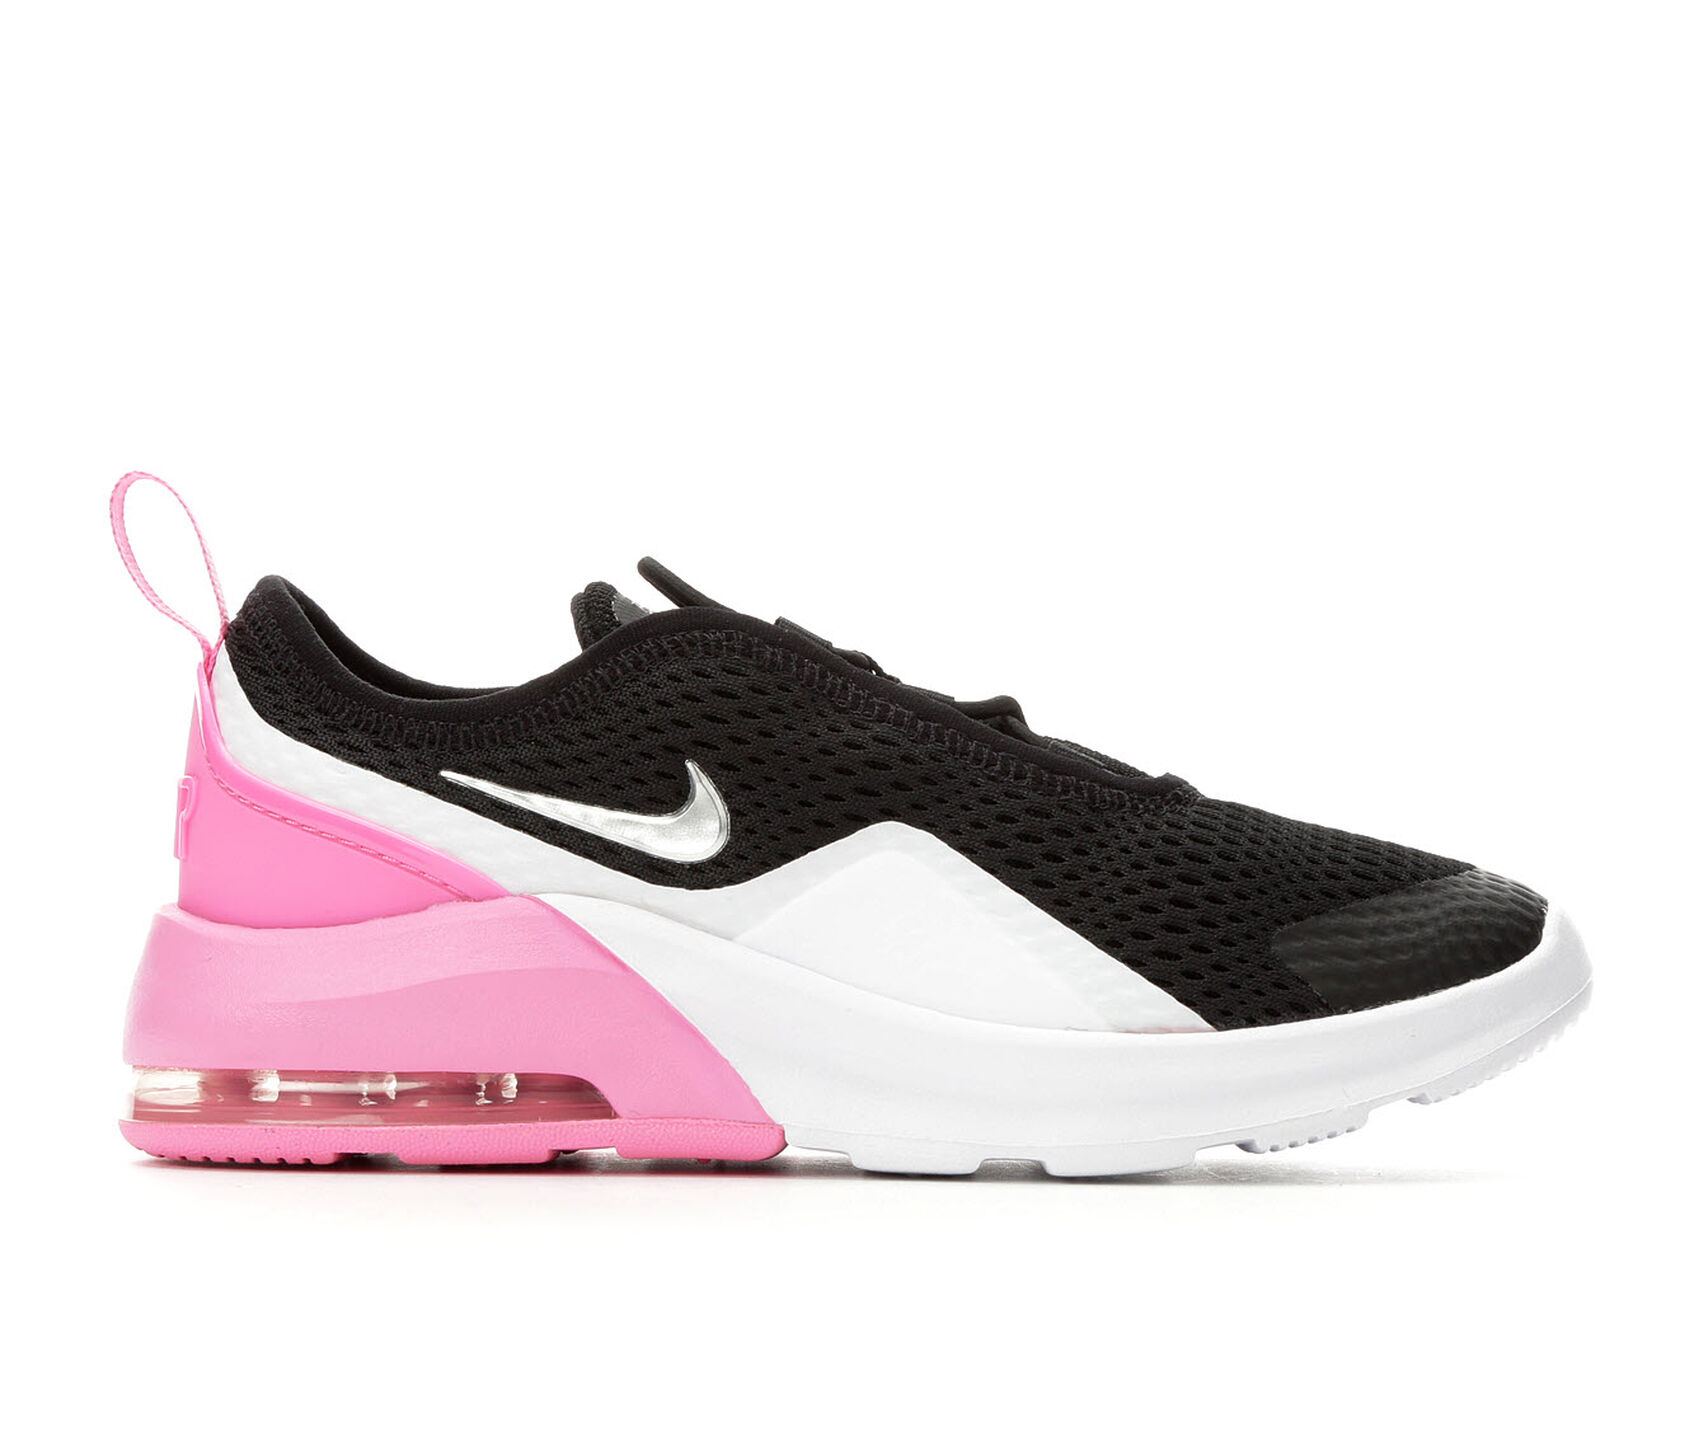 247ad40f03 Girls' Nike Little Kid Air Max Motion 2 Running Shoes | Shoe Carnival